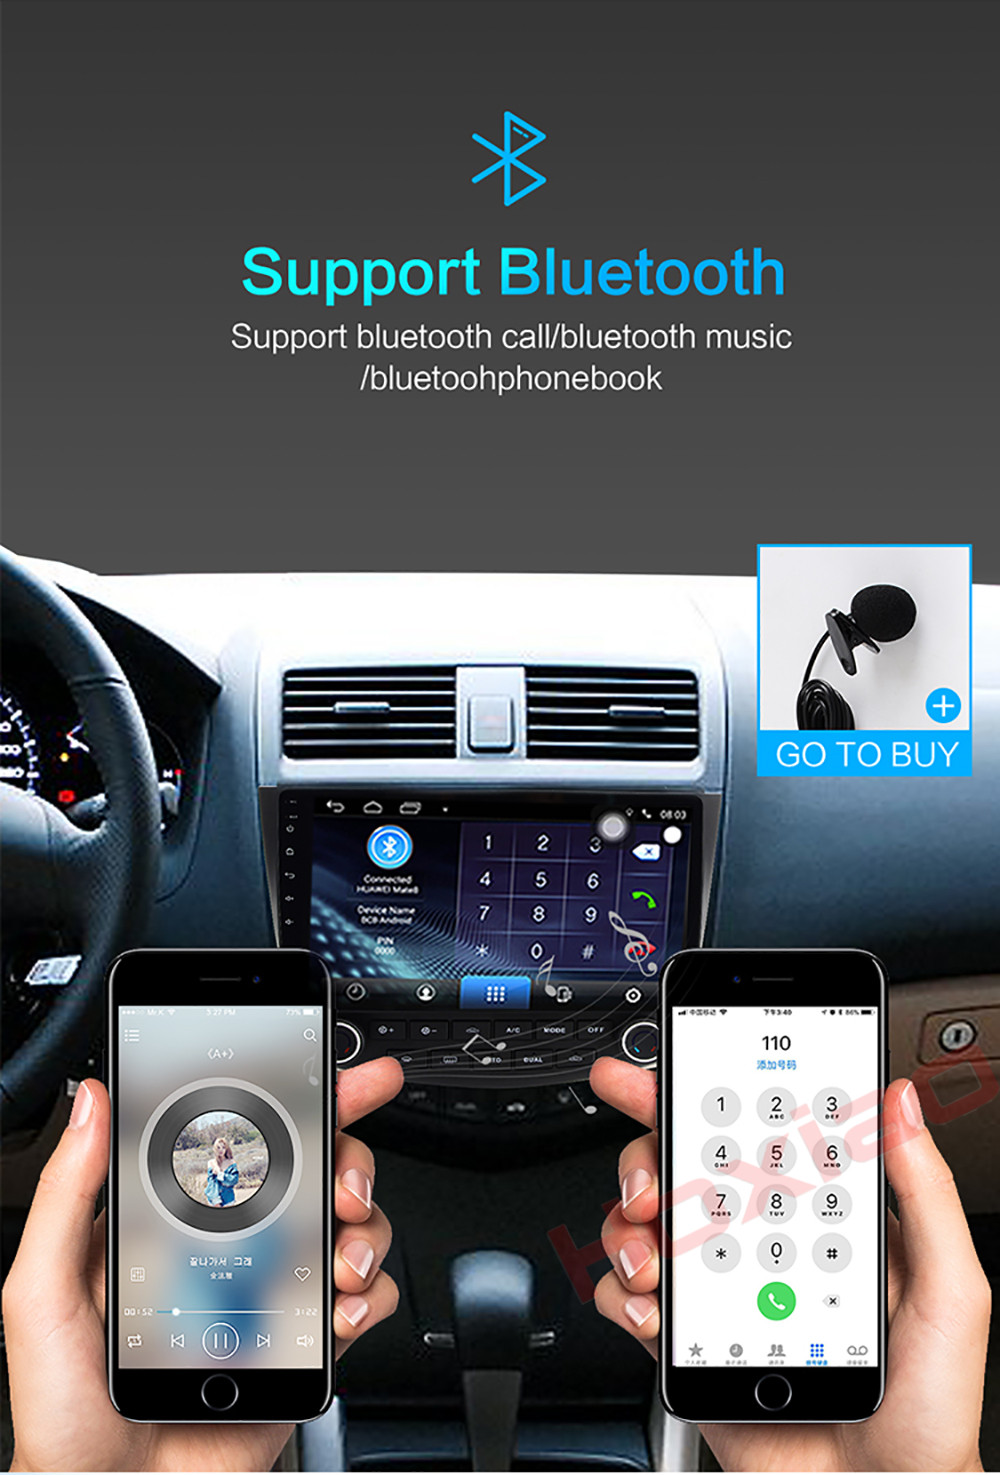 Hoxiao Android 6 For Honda Accord 7 2003 2007 Gps Hd Multimedia Car Interior Lights Delay Each Country Has A Remote Area Ups Can Not Be Reached In Areas This Case Only Transfer Other Transportation Channels